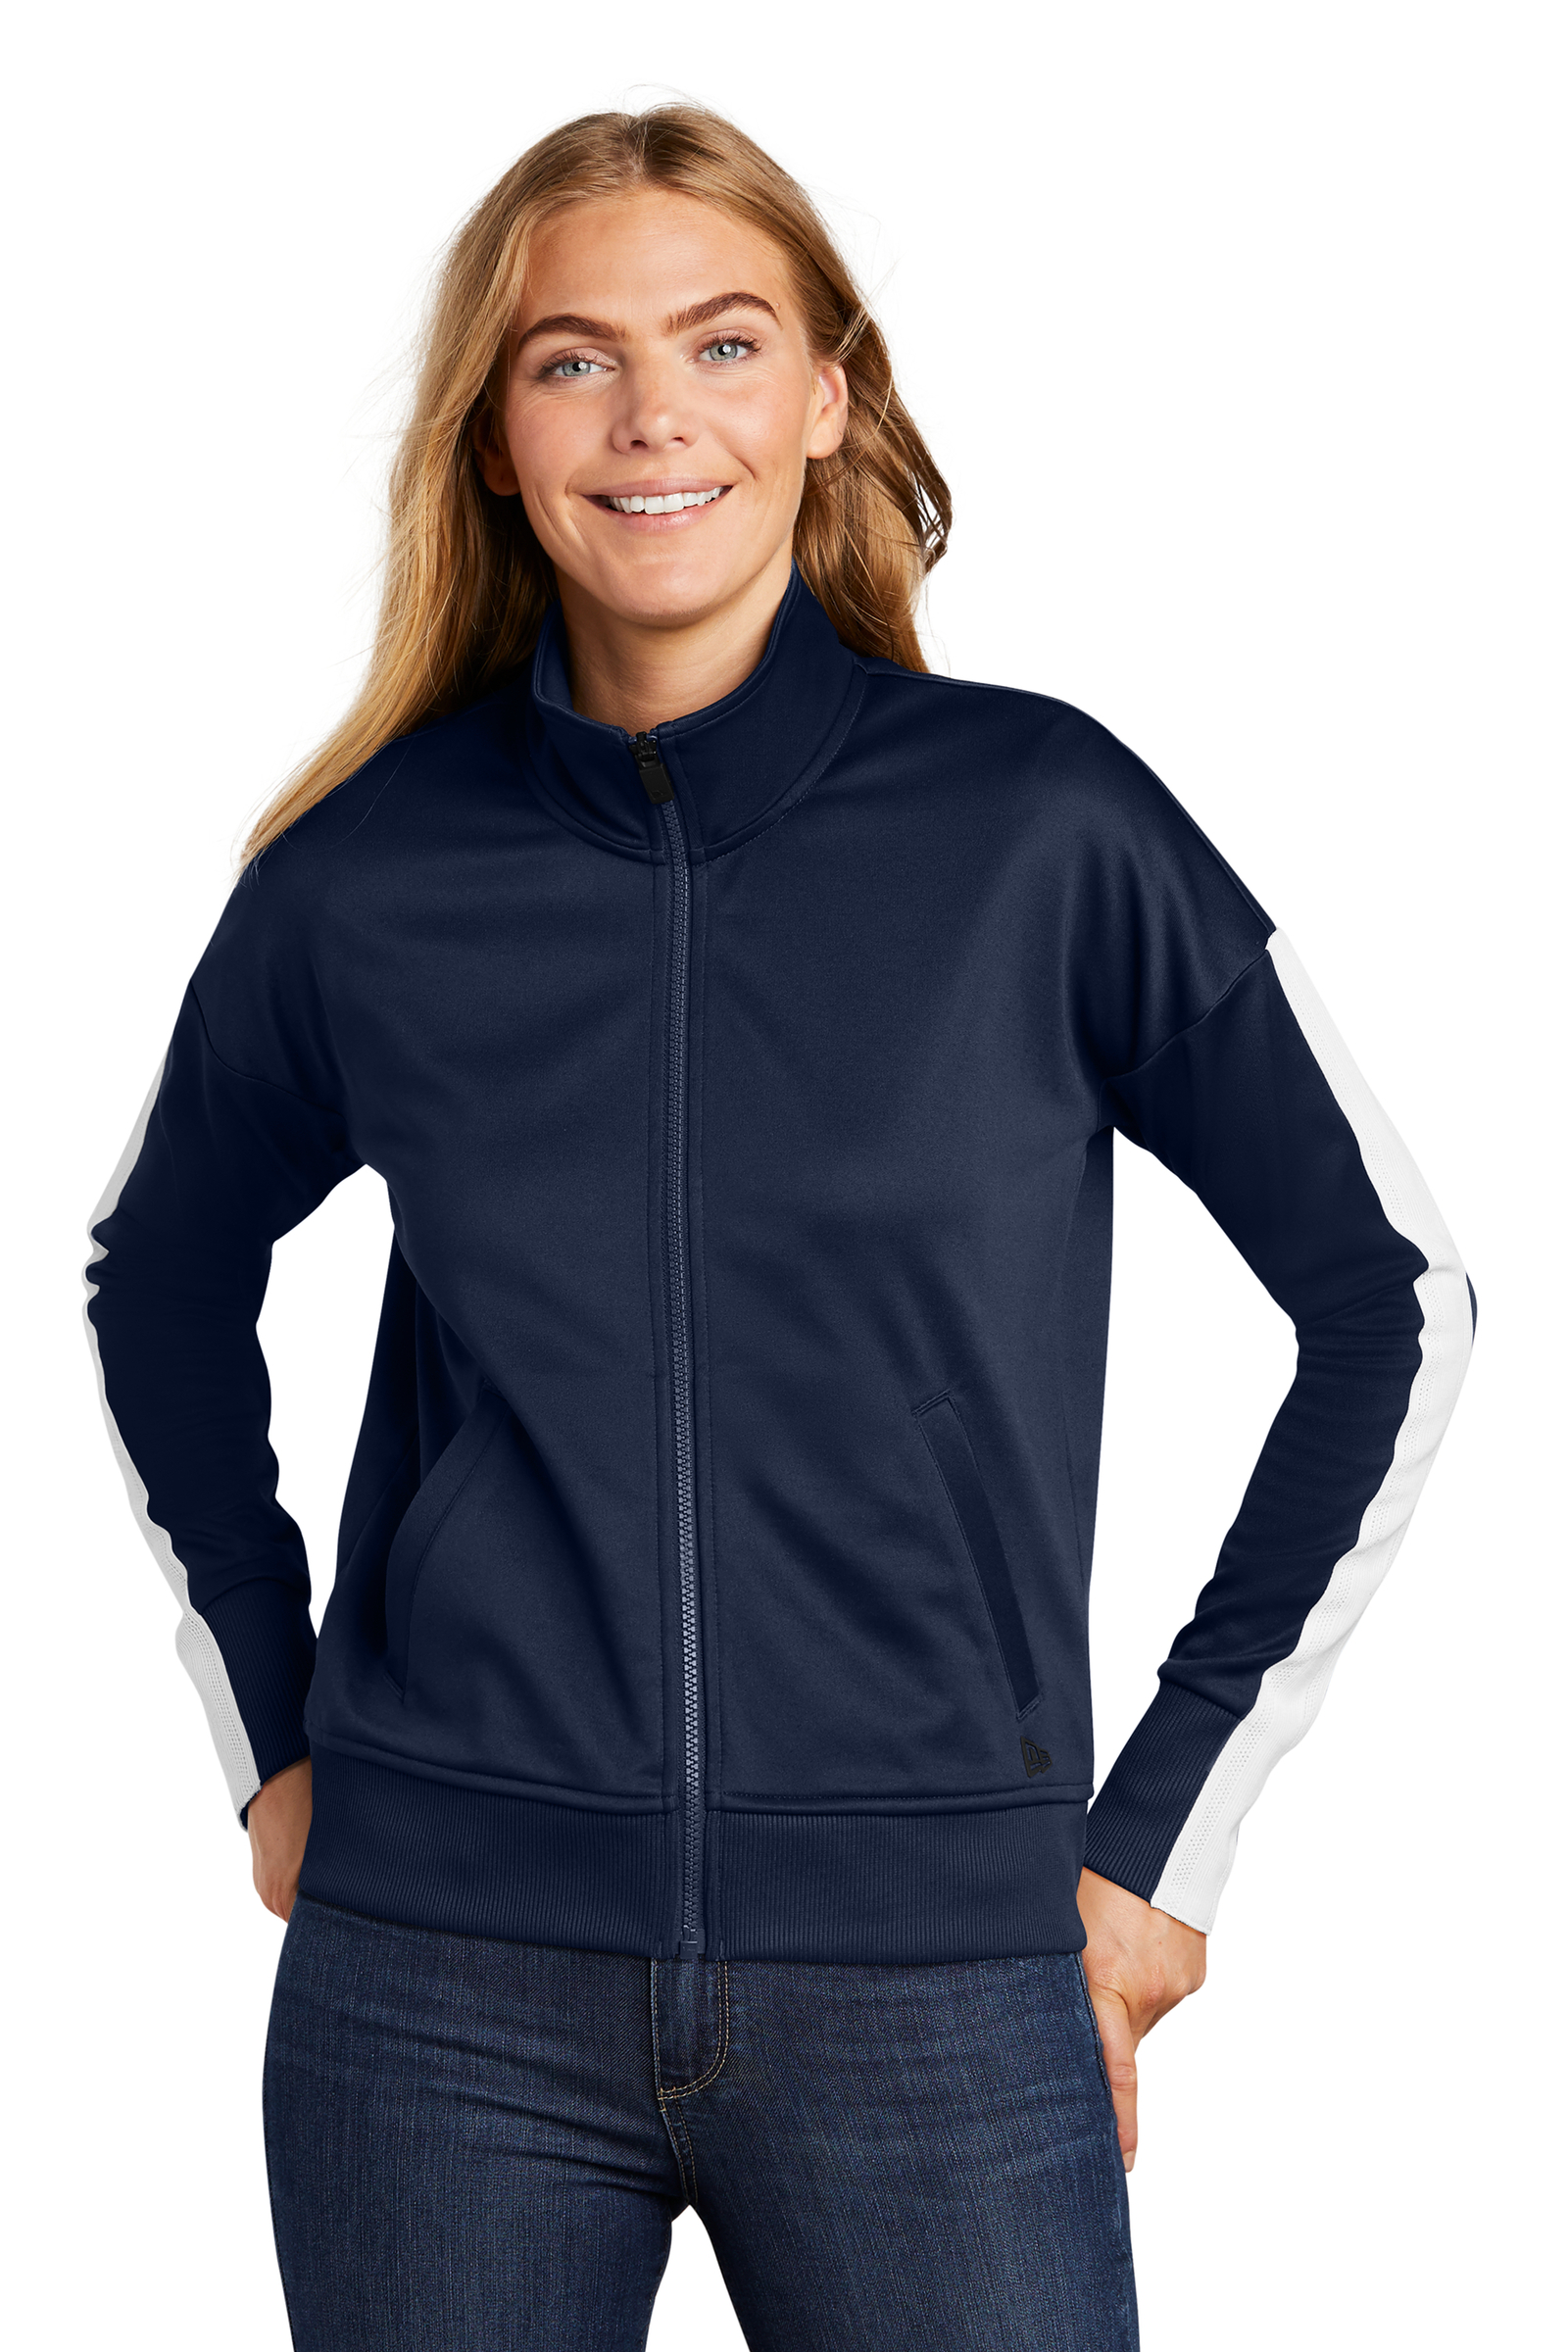 New Era Embroidered Women's Track Jacket